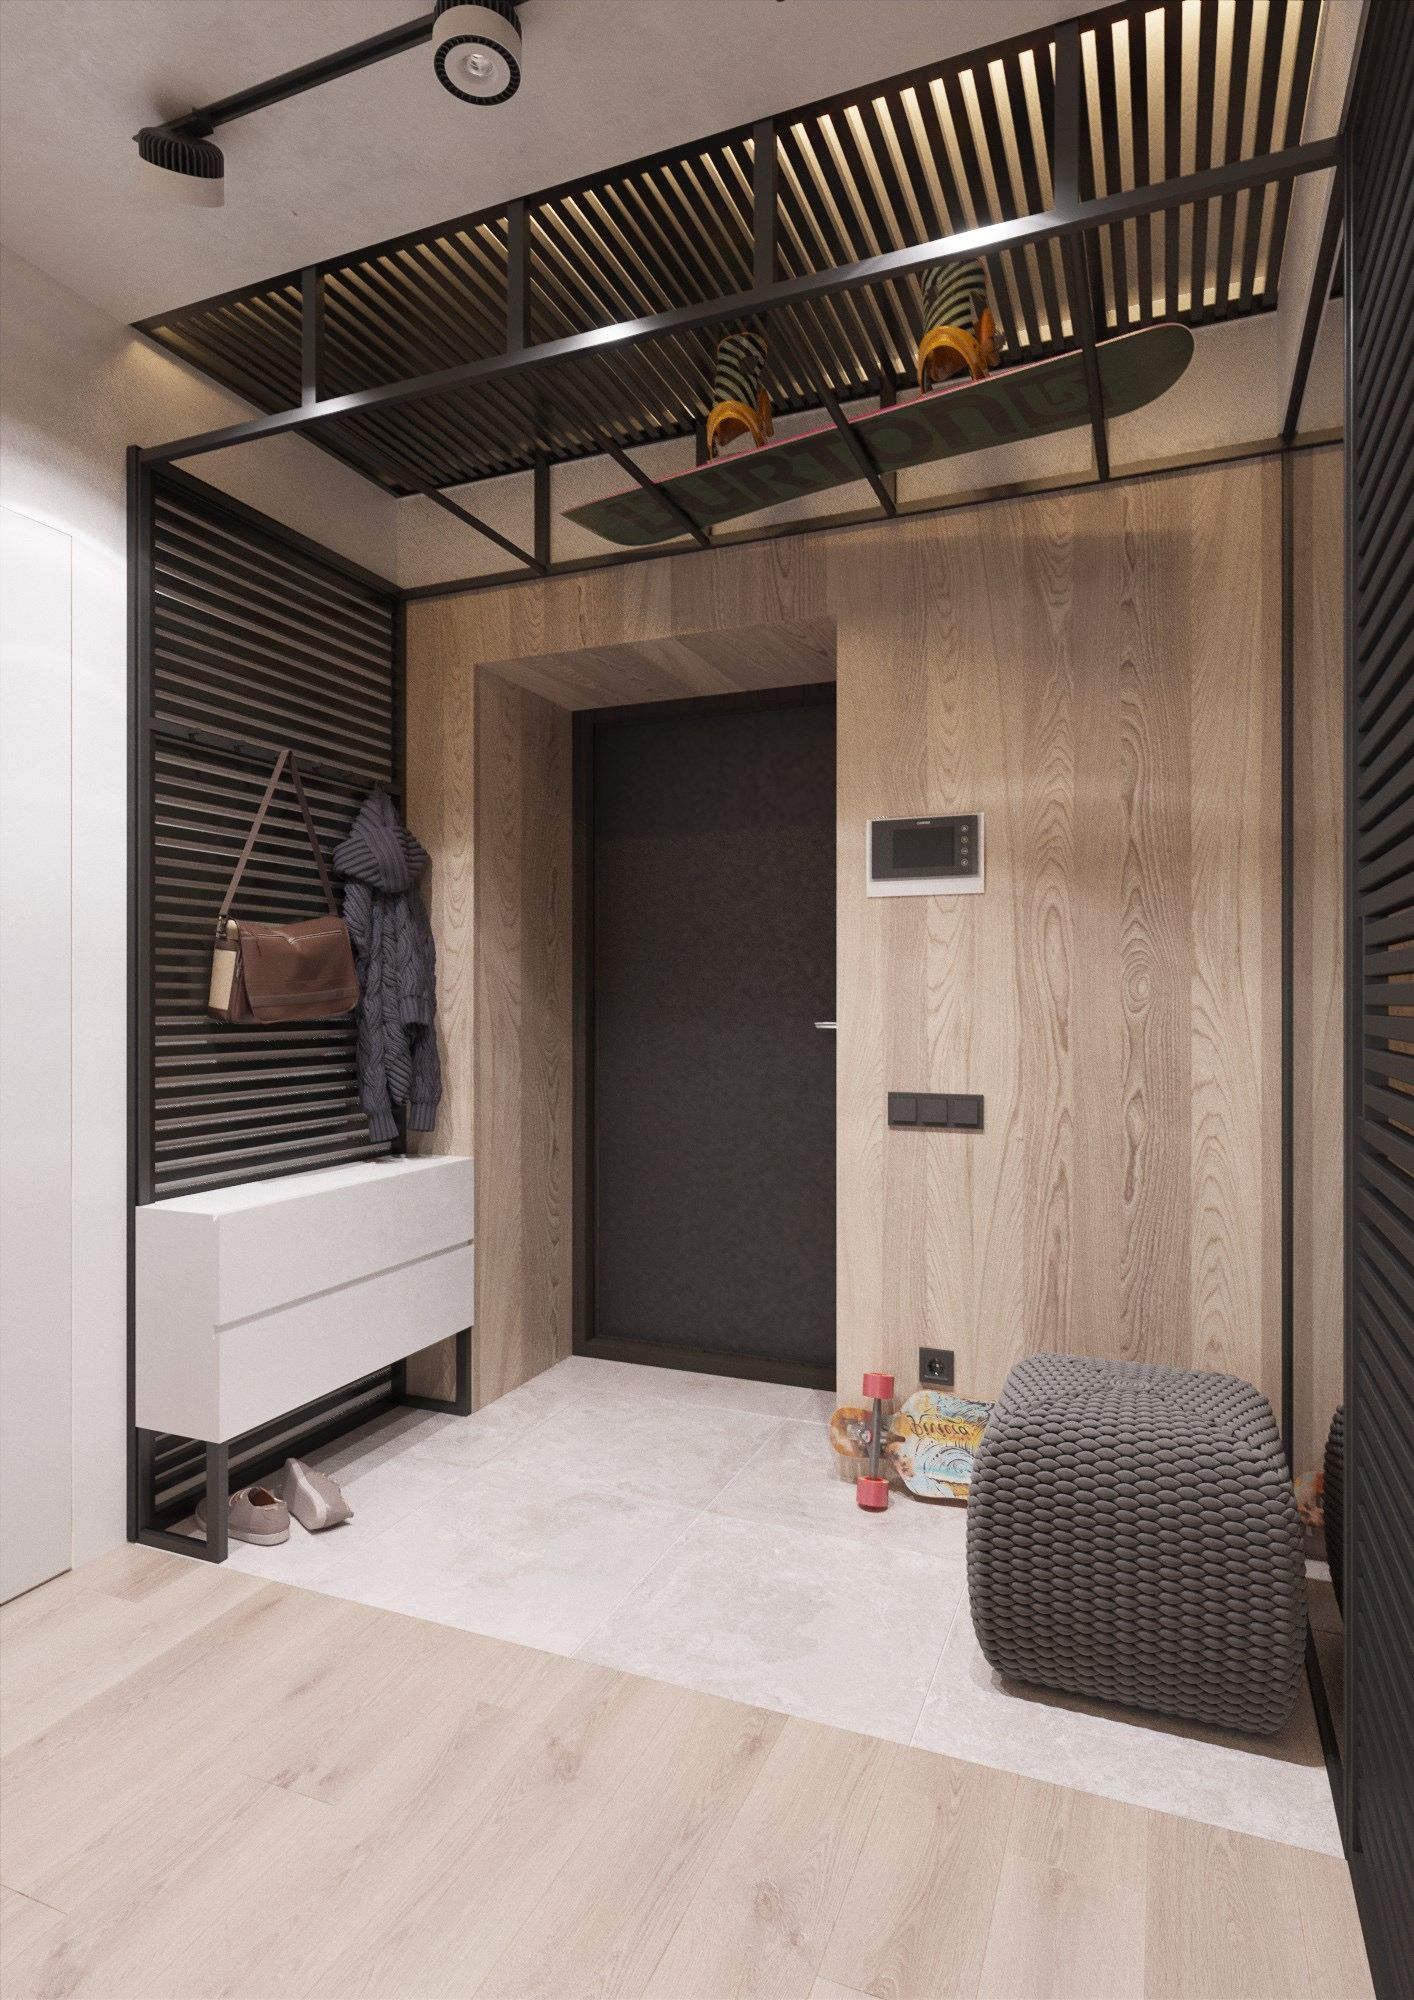 Entry hallway furniture  Pin by duru on Holuri  Pinterest  Hall Interiors and Apartments